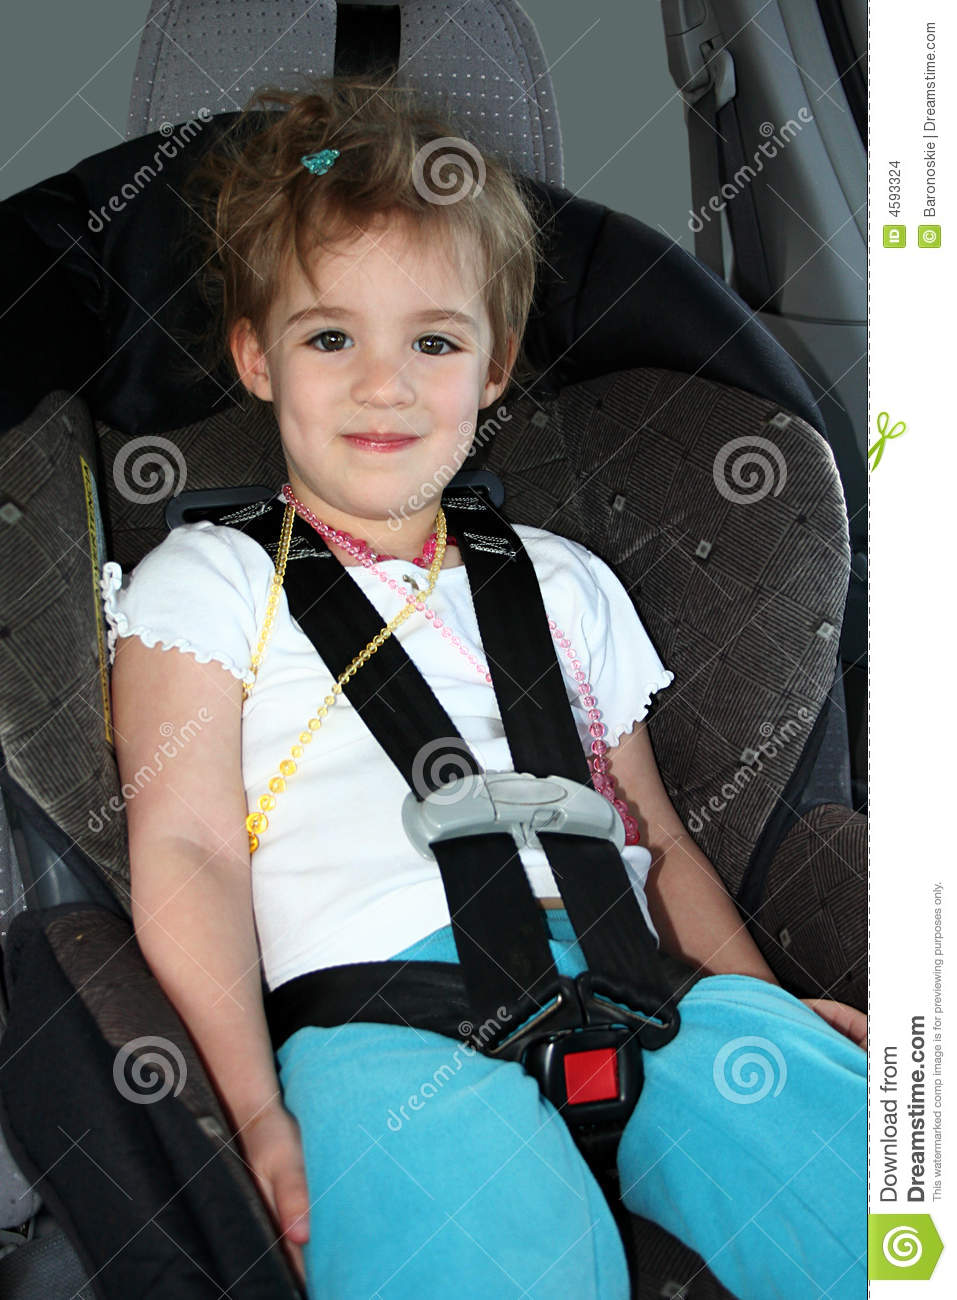 Little Girl In Car Seat Stock Photo Image Of Vehicle